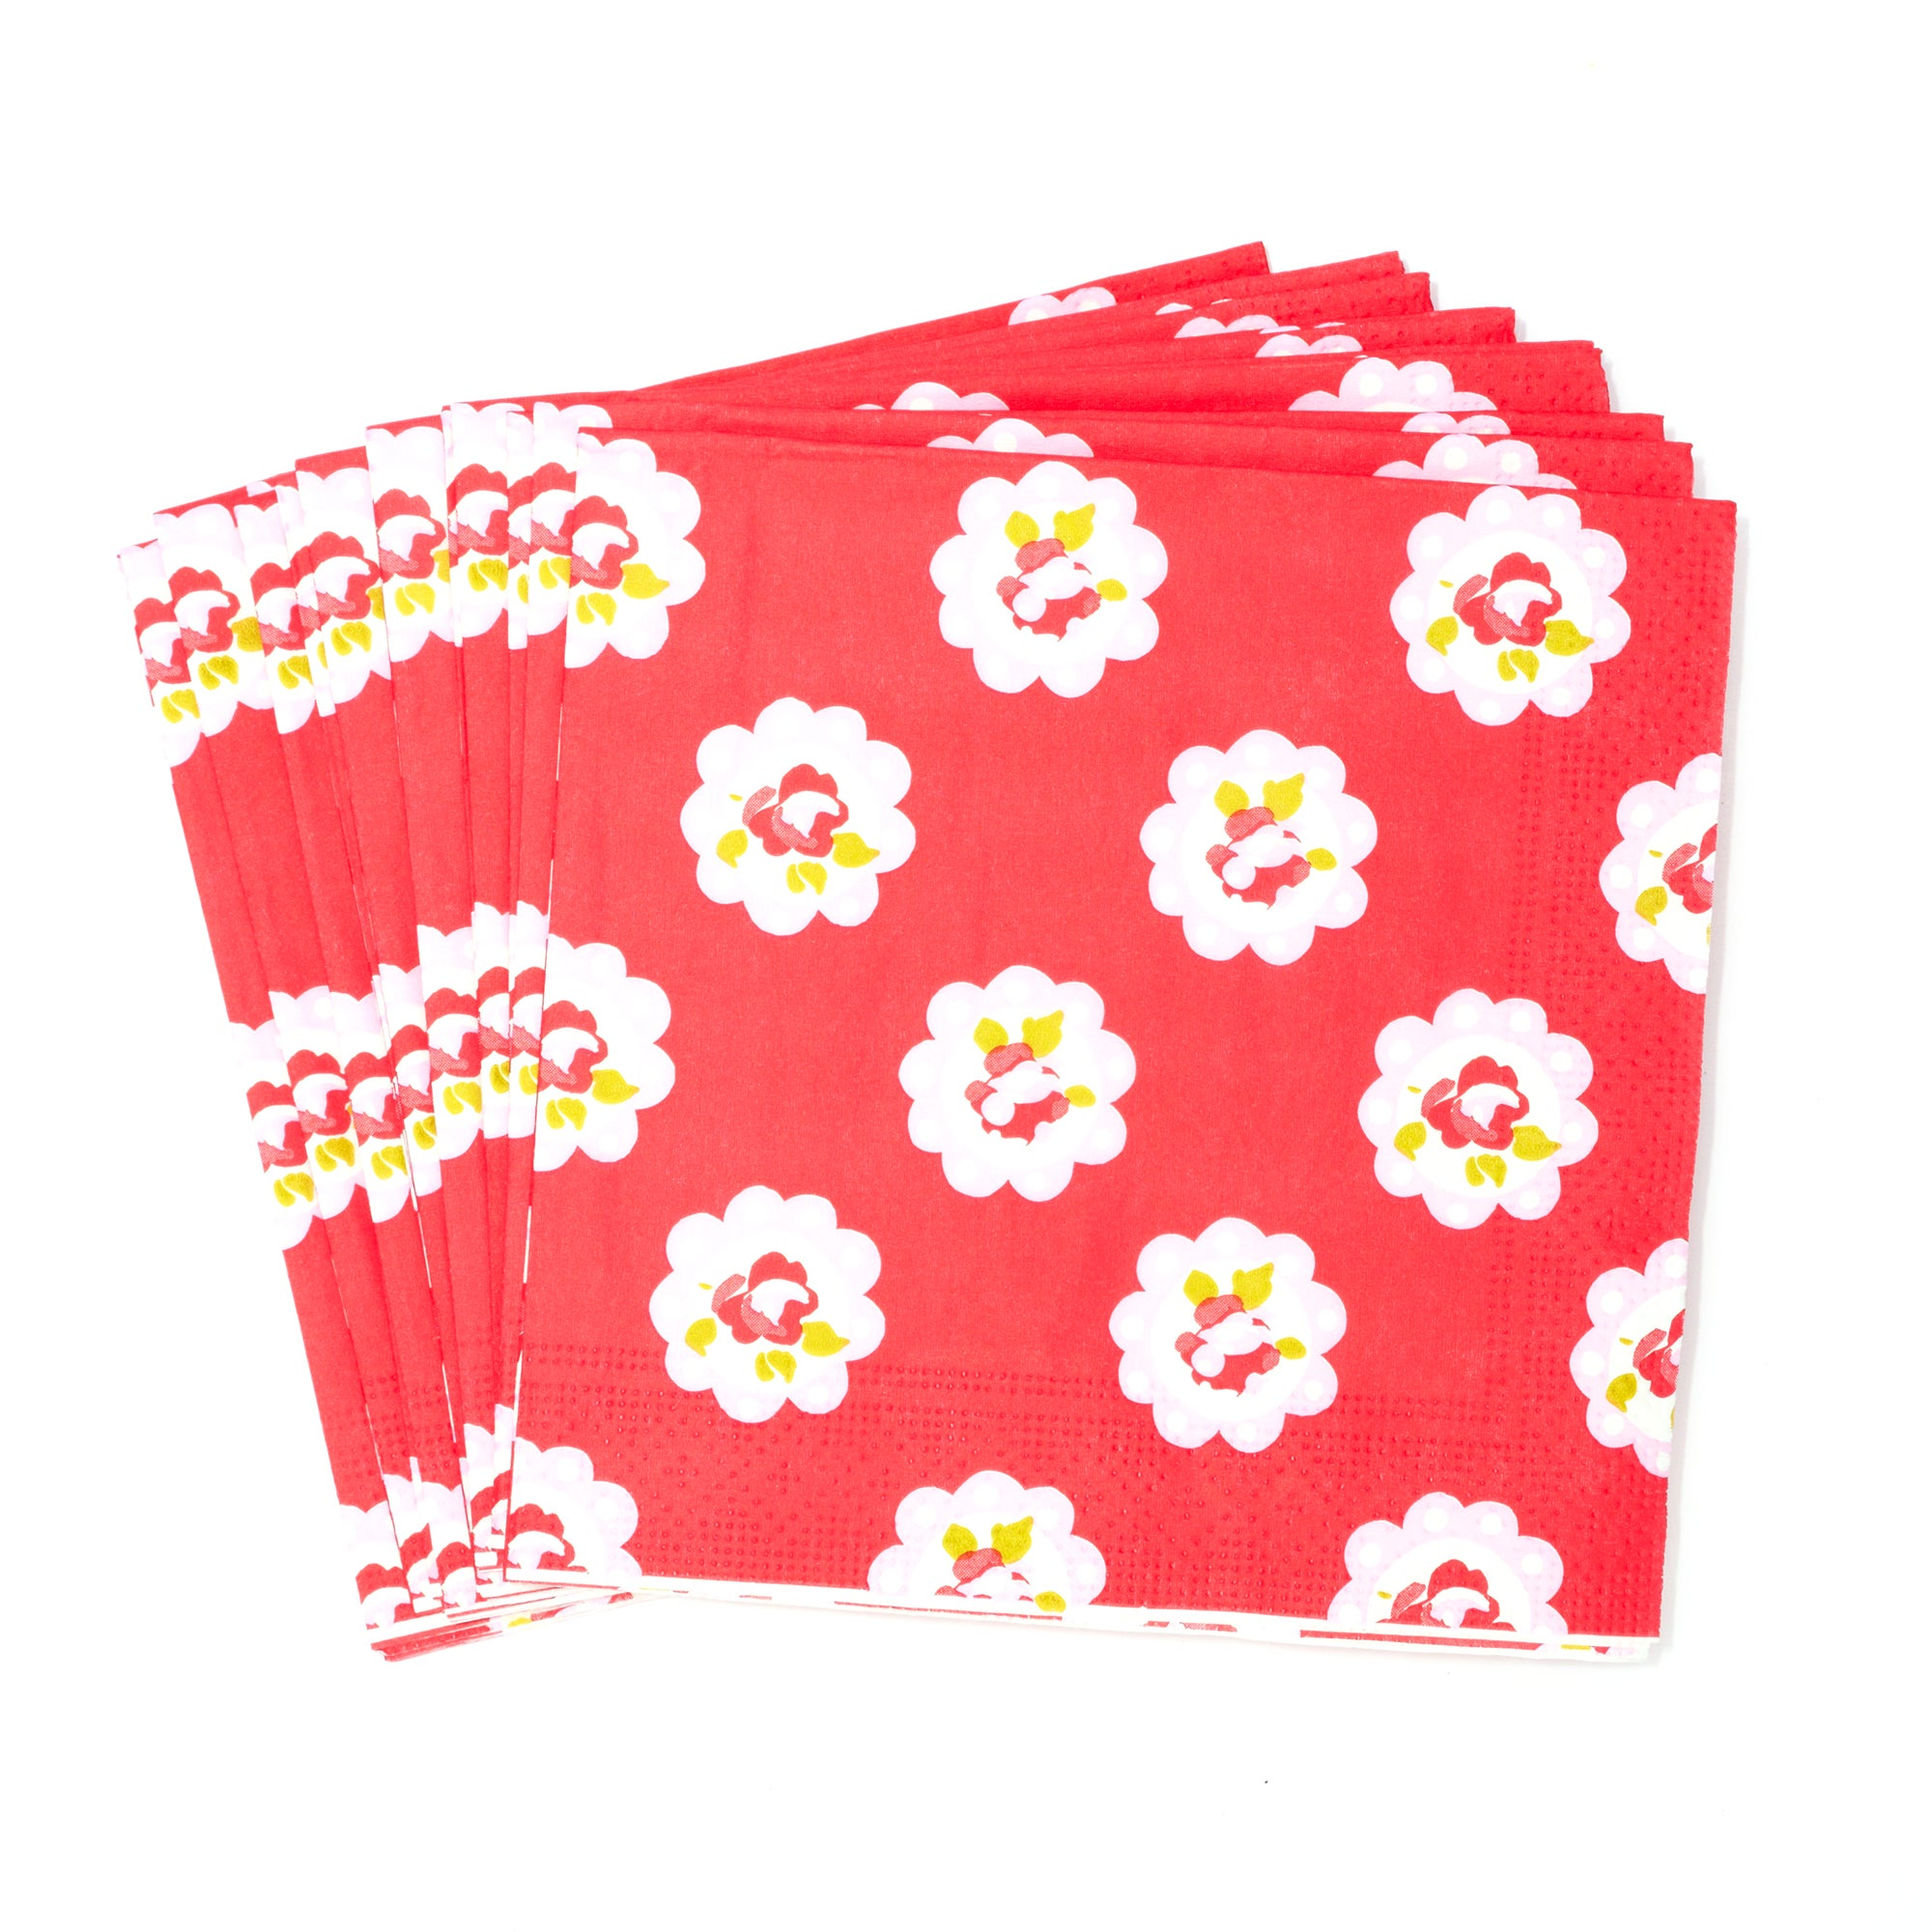 Rose and Ellis Allexton Collection Pack of 20 Paper Napkins